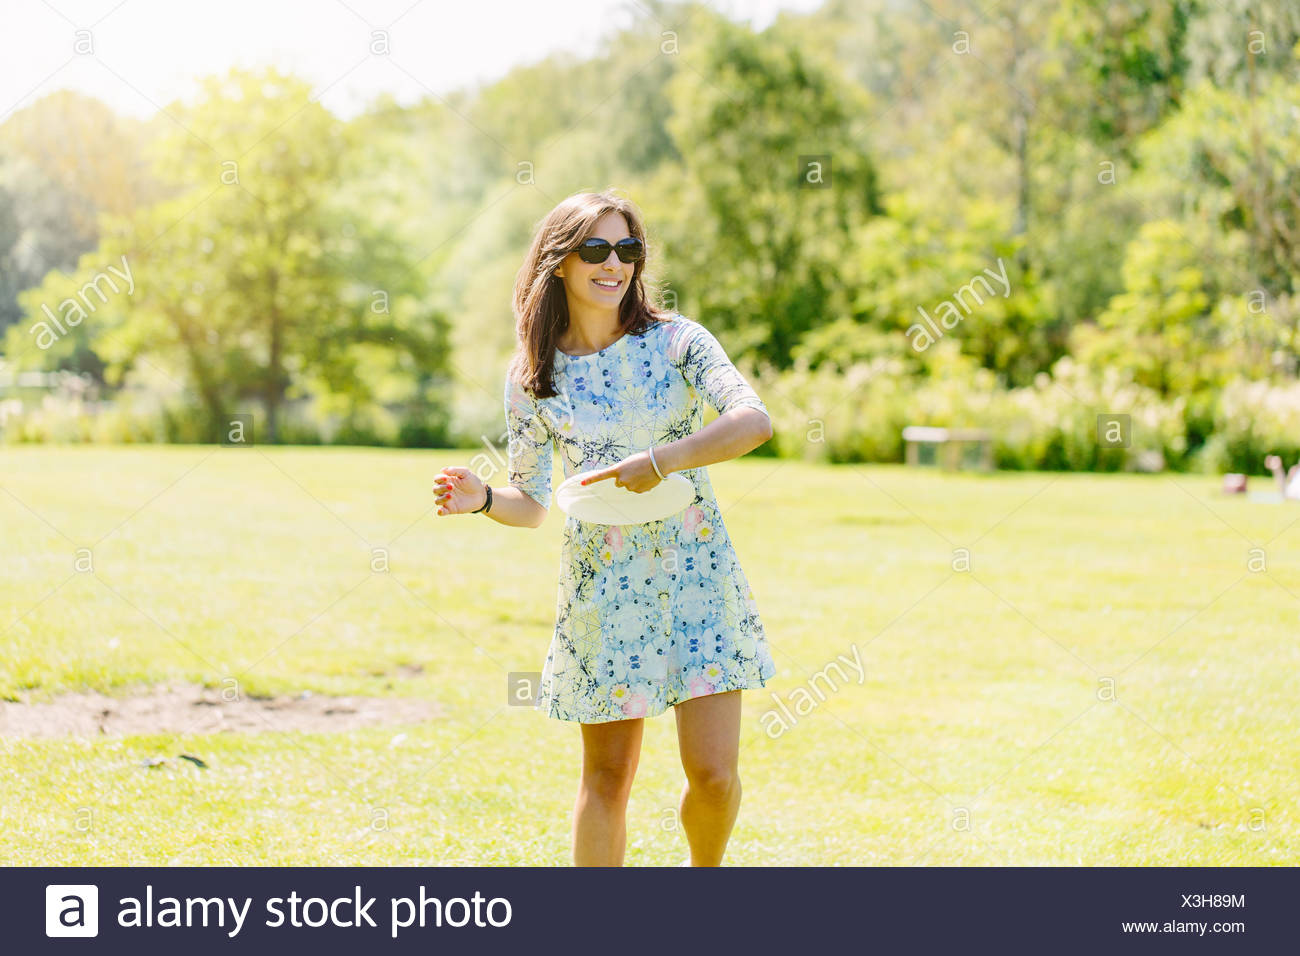 Woman playing disc game in the park - Stock Image